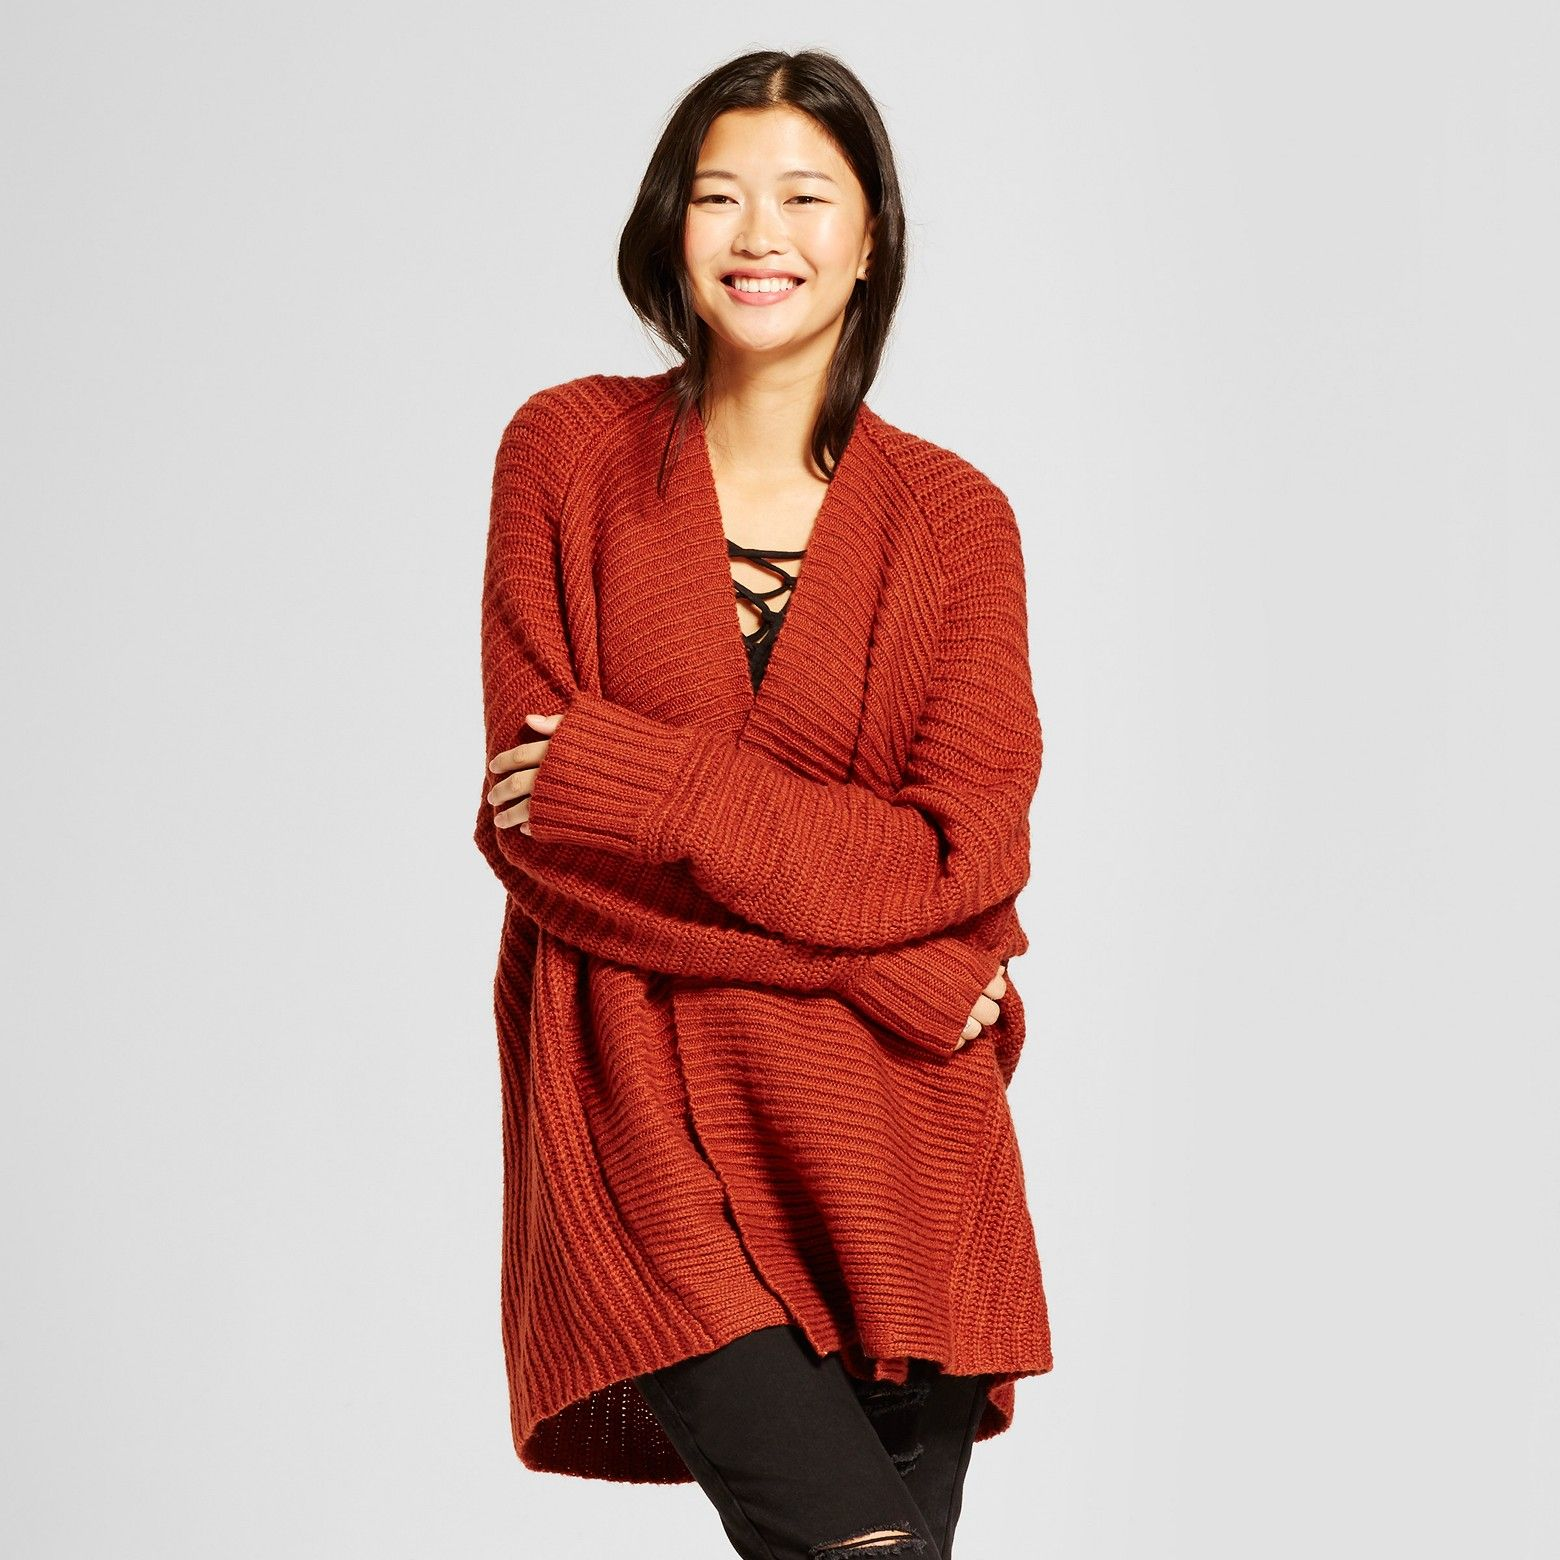 TARGET: Layer up in style with the Oversized Cocoon Cardigan from ...